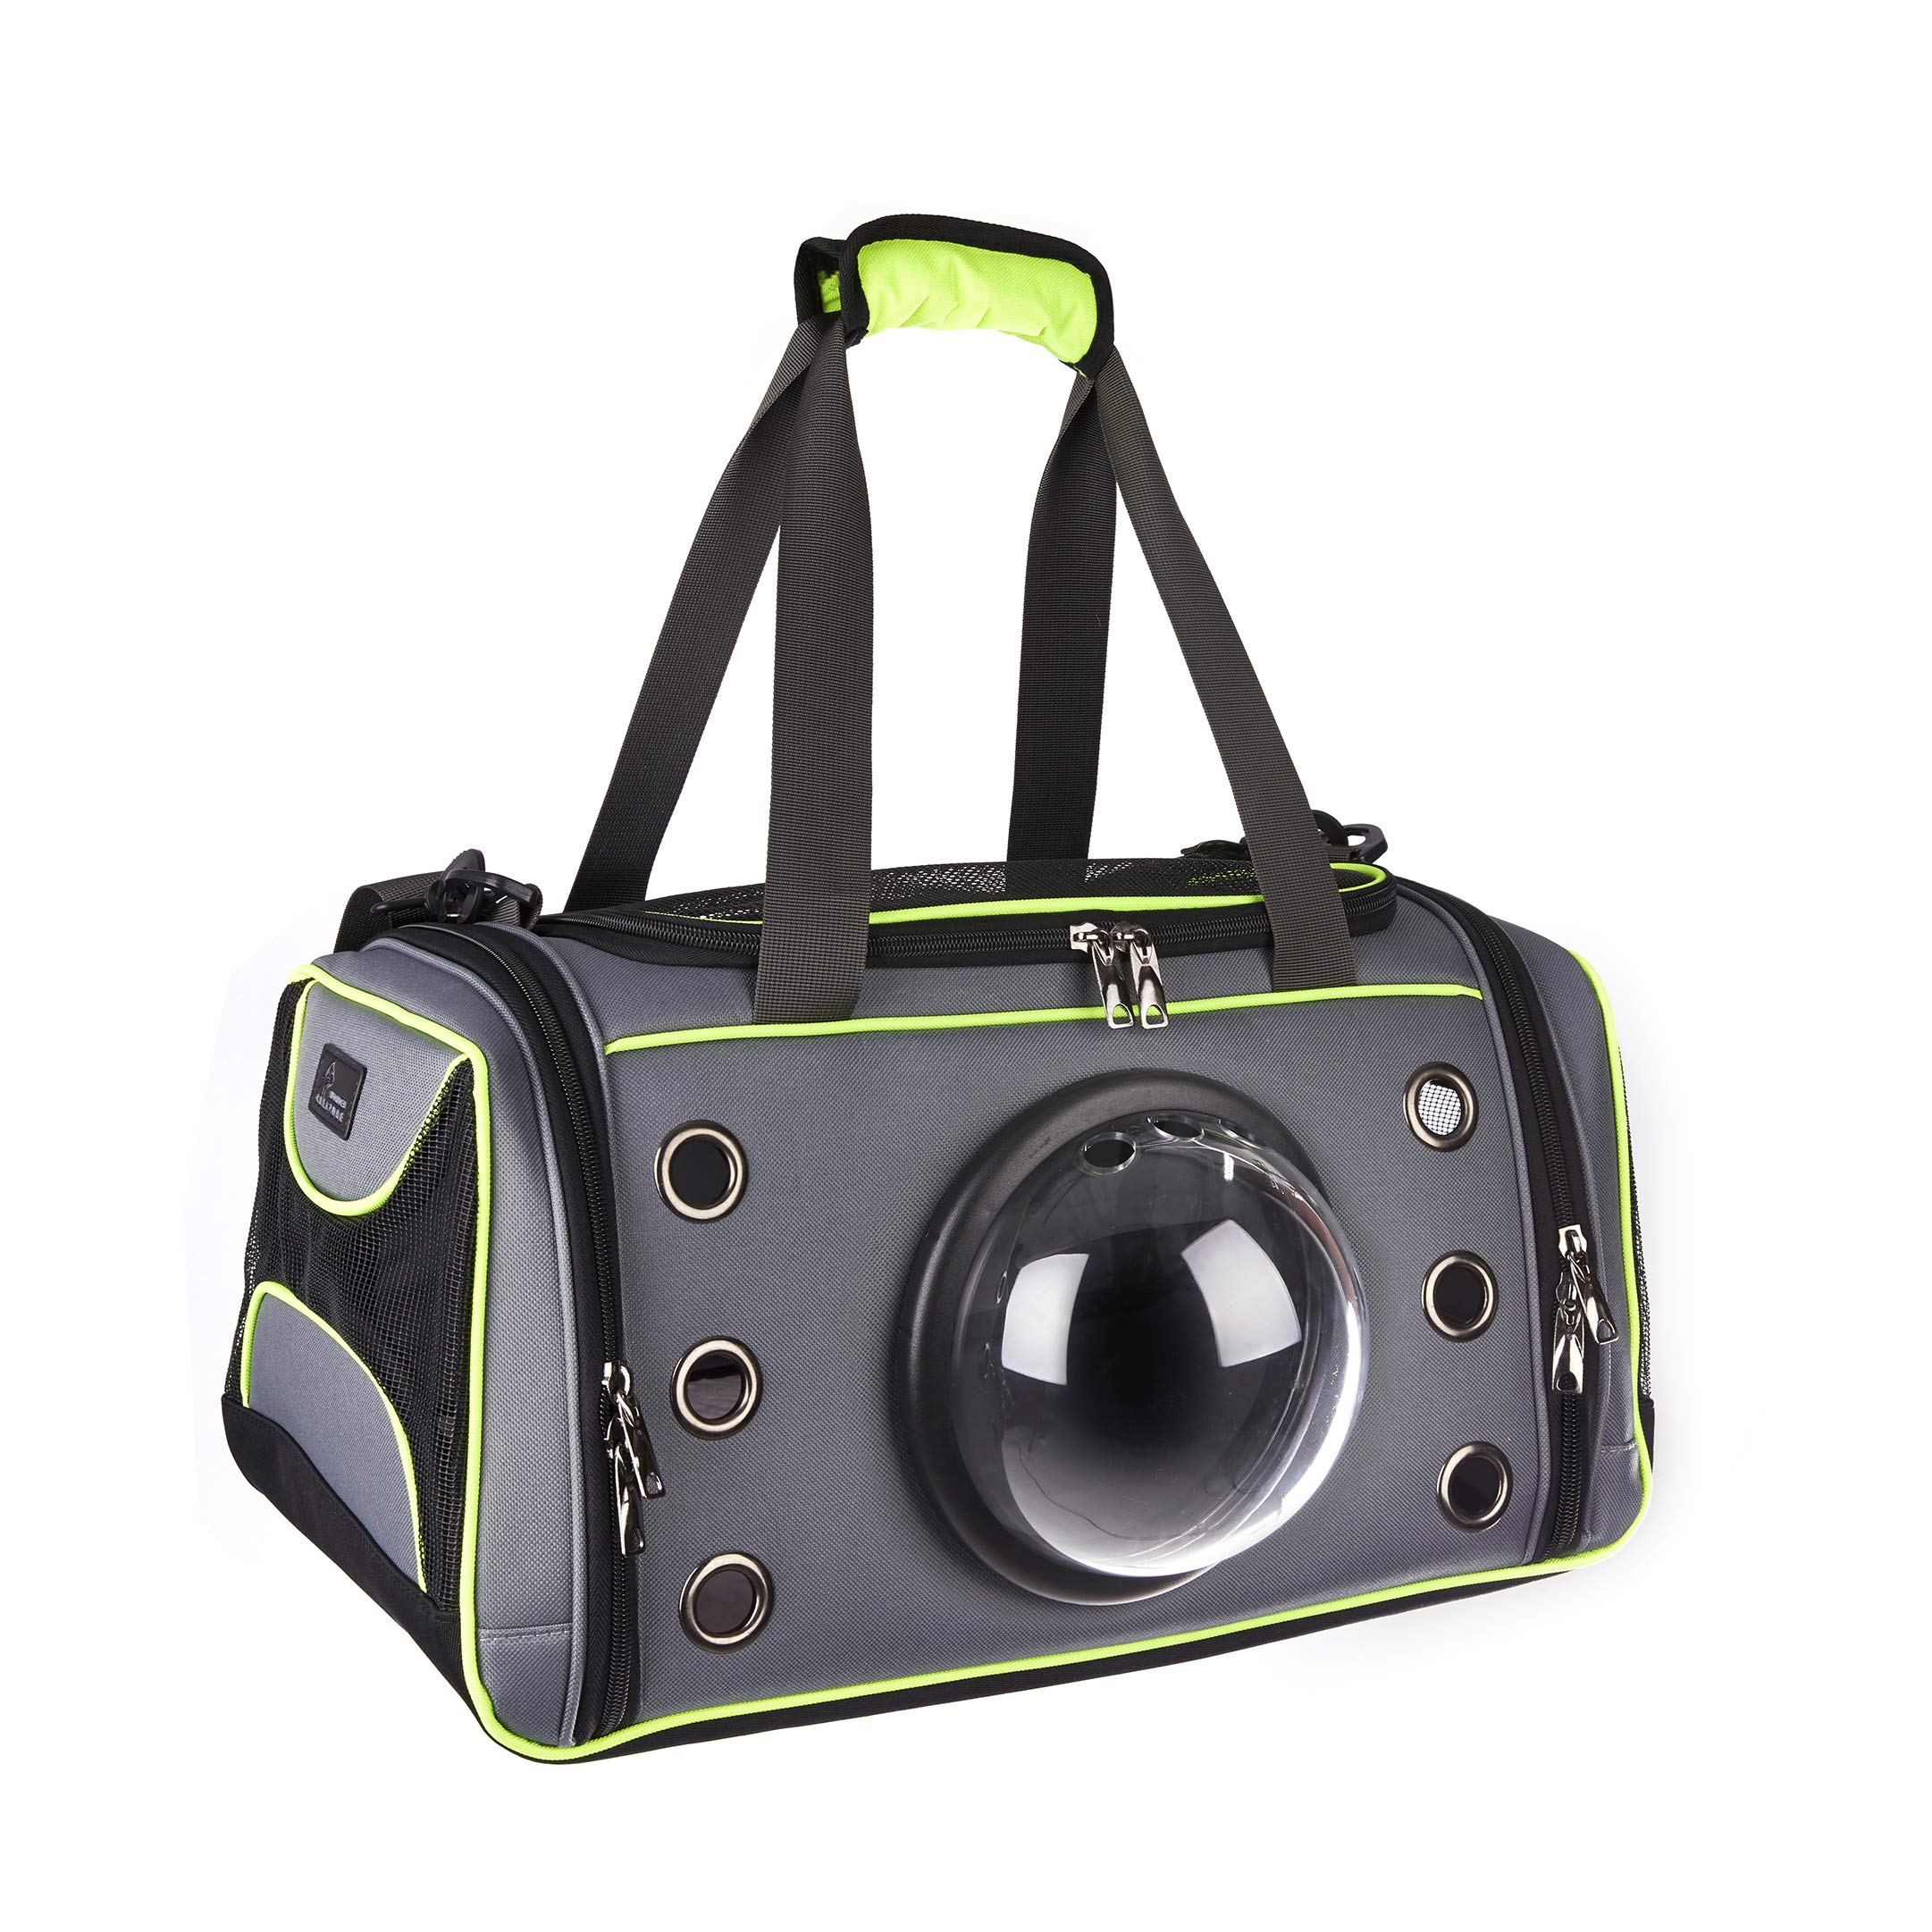 Wonder Creature Pet Carrier Dog and Cat Carrier Pet Travel Bag Transparent Breathable Space Capsule Design for Small Dog Cat Kittens Puppies Premium Quality 16.1'' x 9.8'' x 9.4''